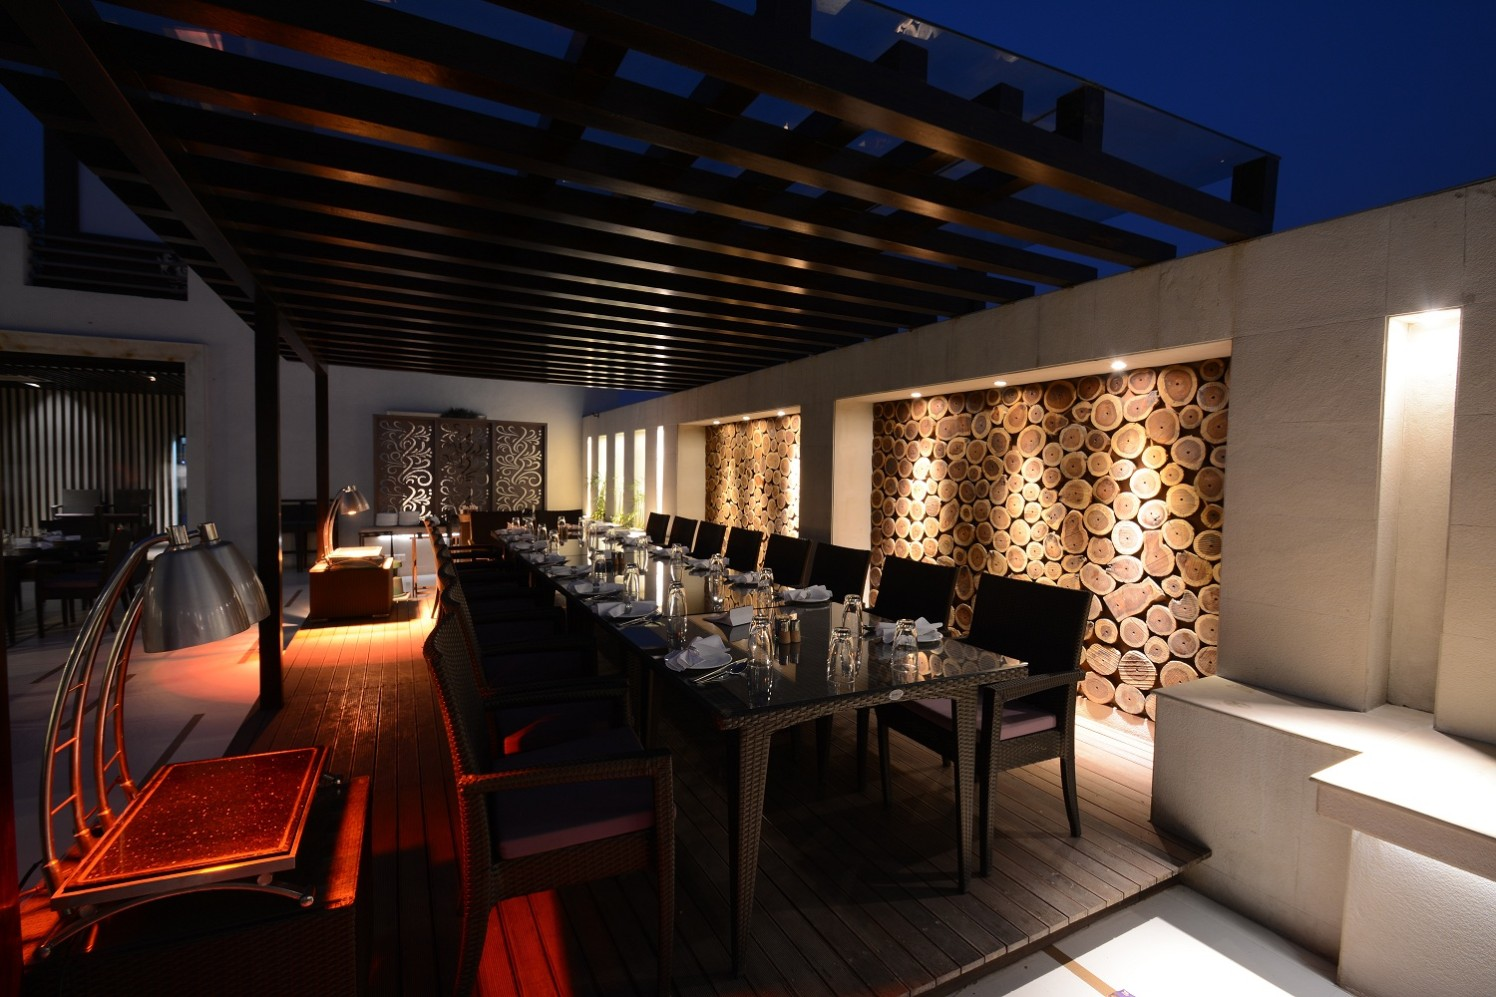 Exquisite Dining by shailendra m prasad  Contemporary Contemporary | Interior Design Photos & Ideas